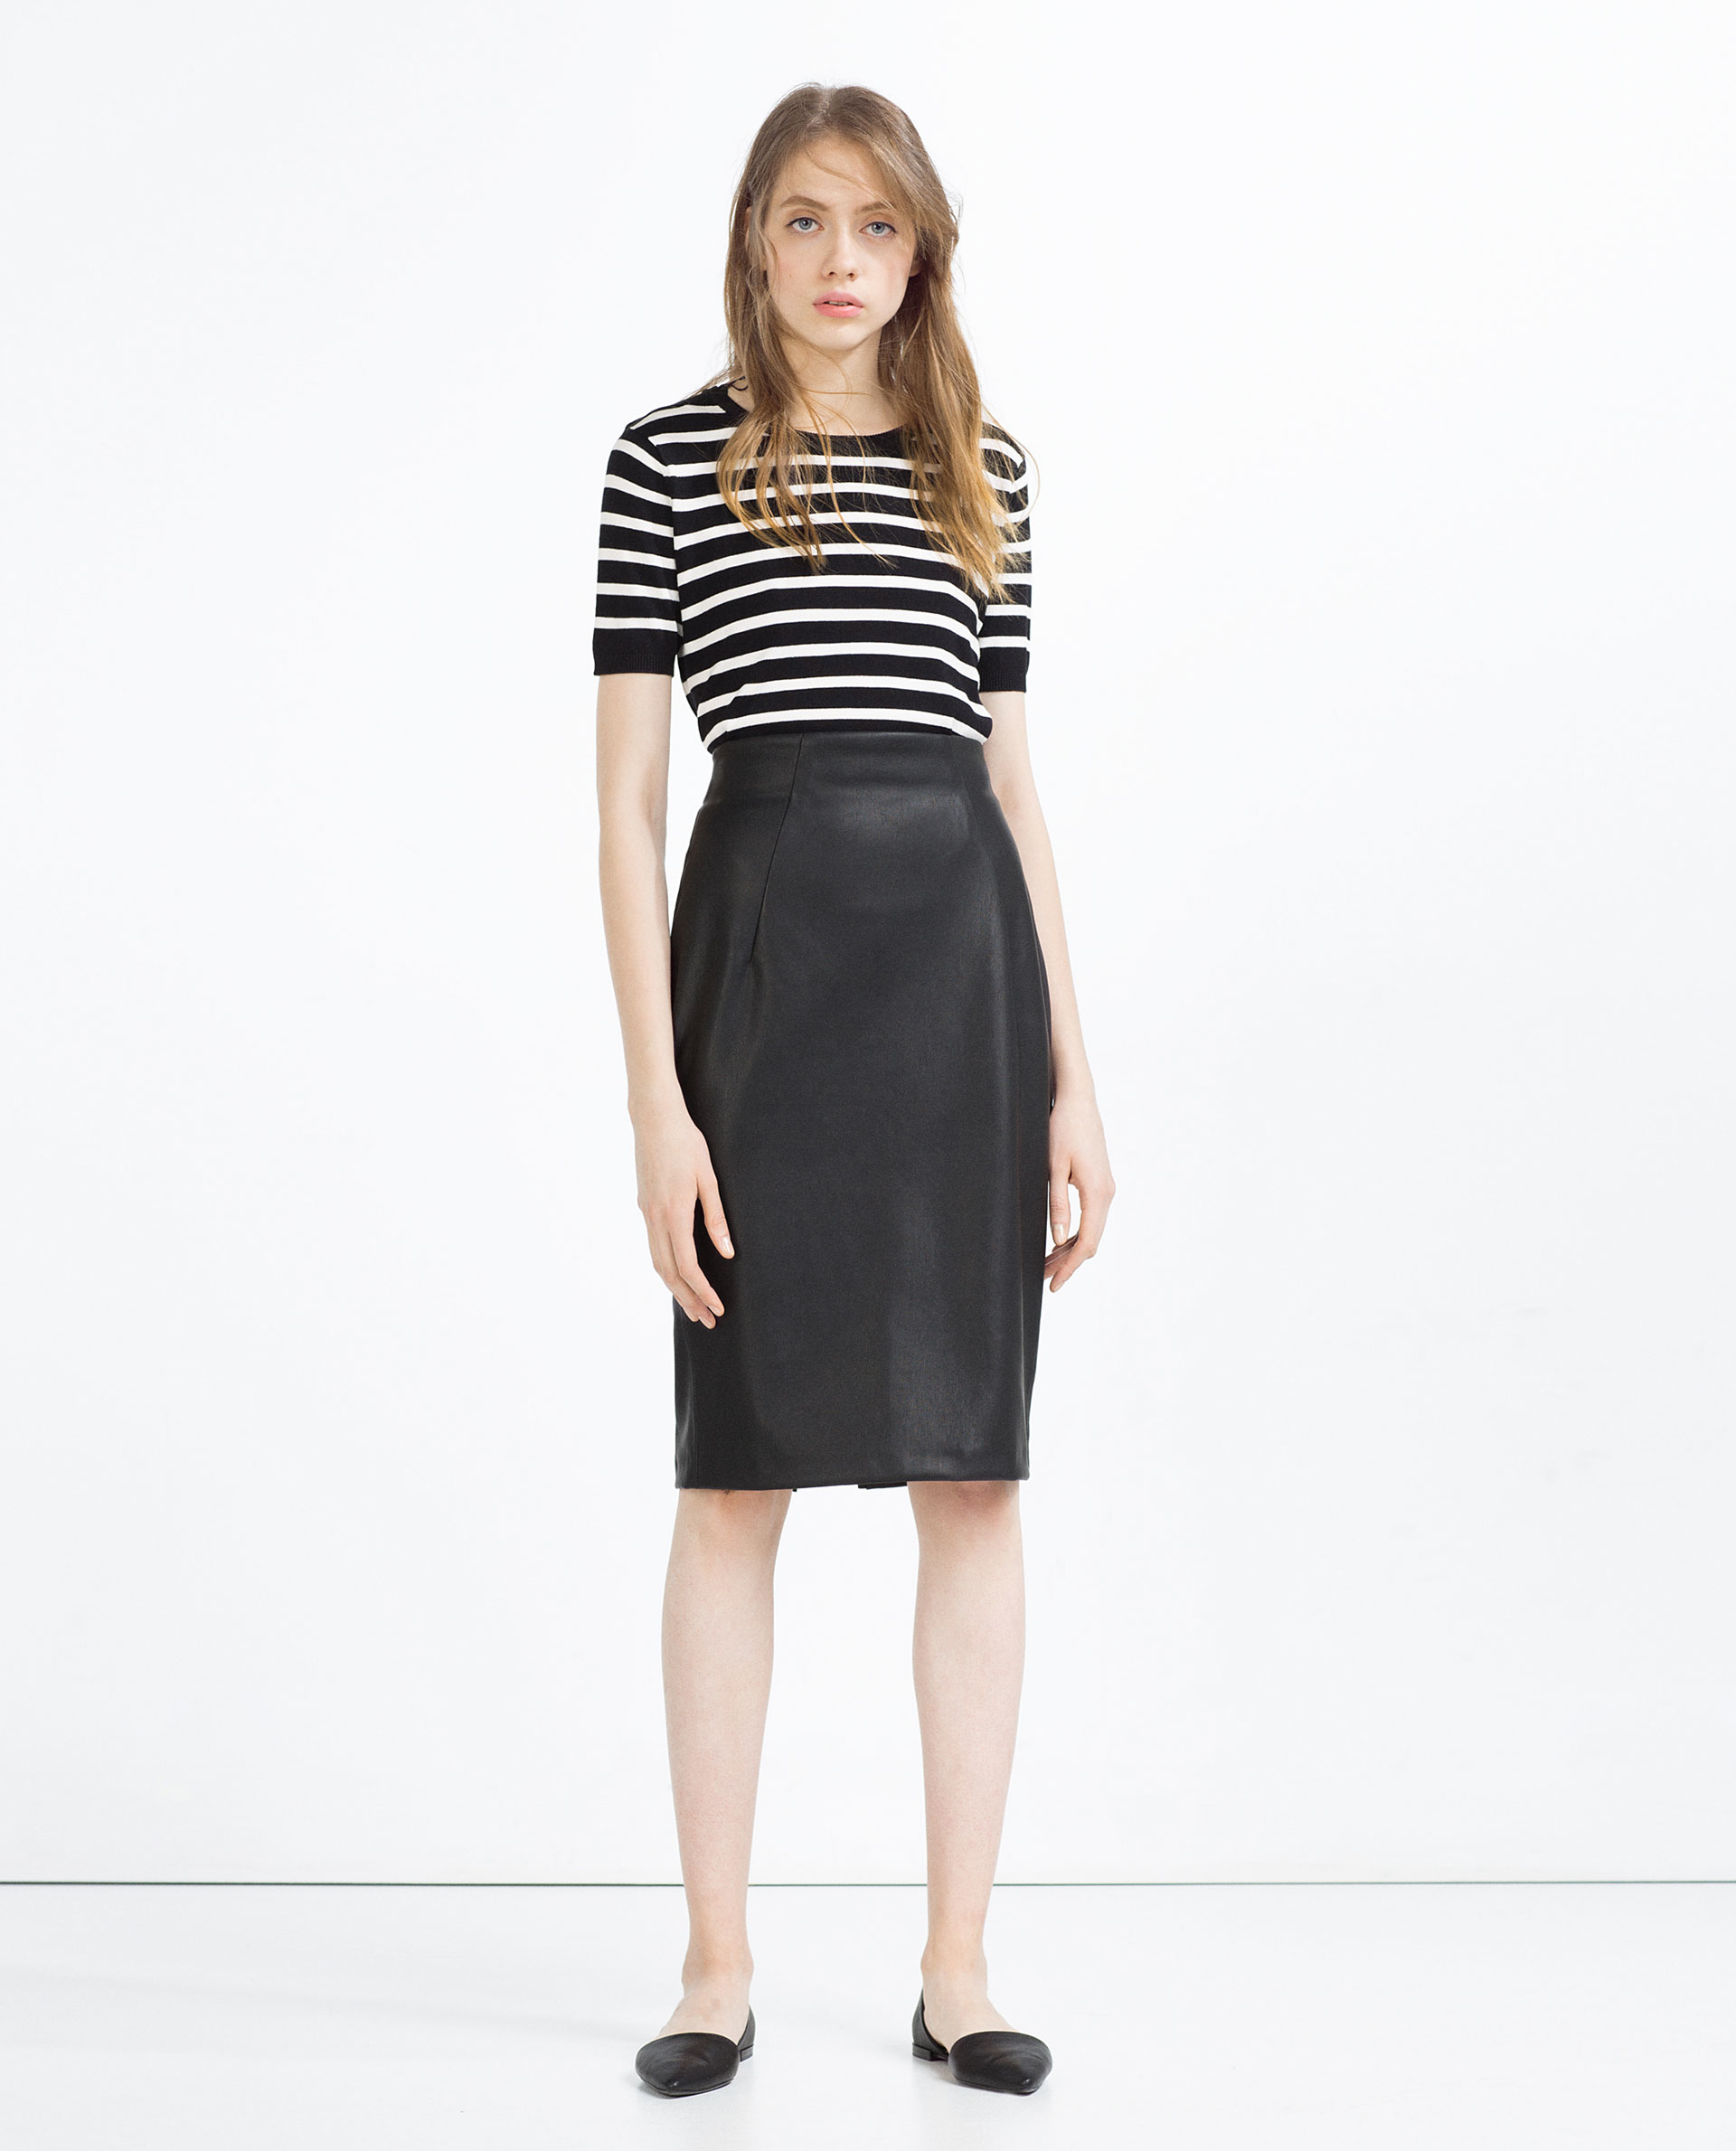 Zara Faux Leather Pencil Skirt in Black | Lyst